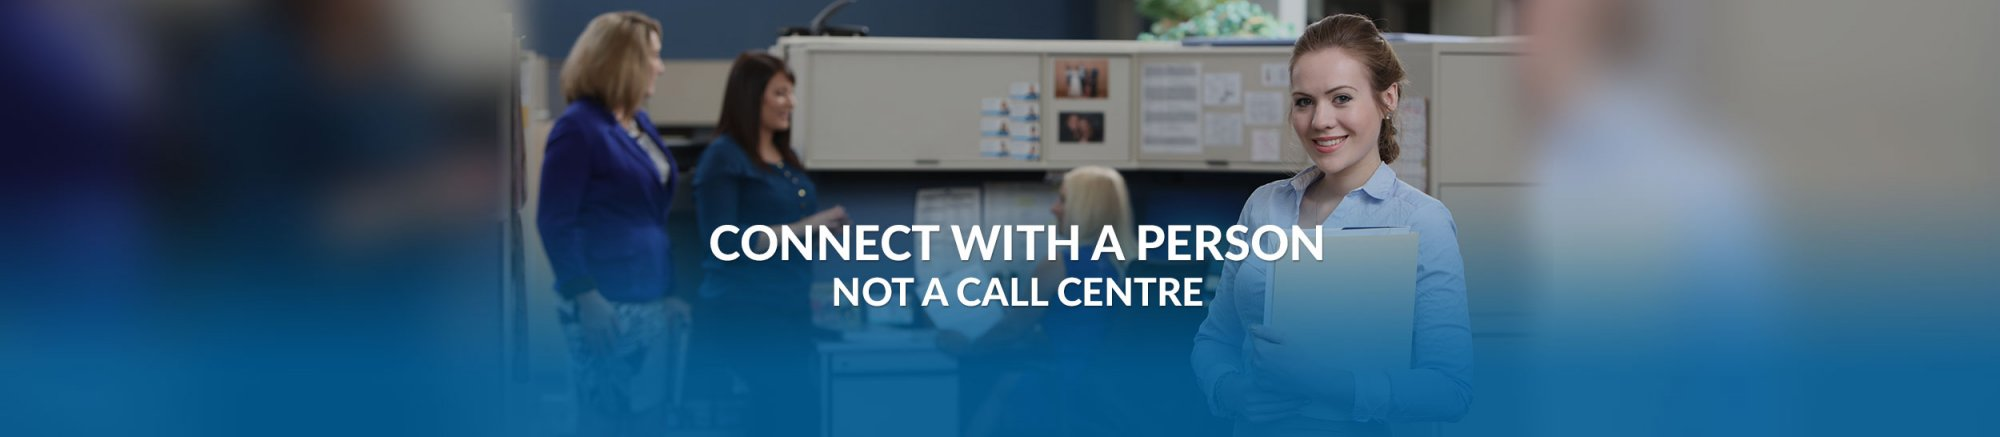 connect with person not a call center